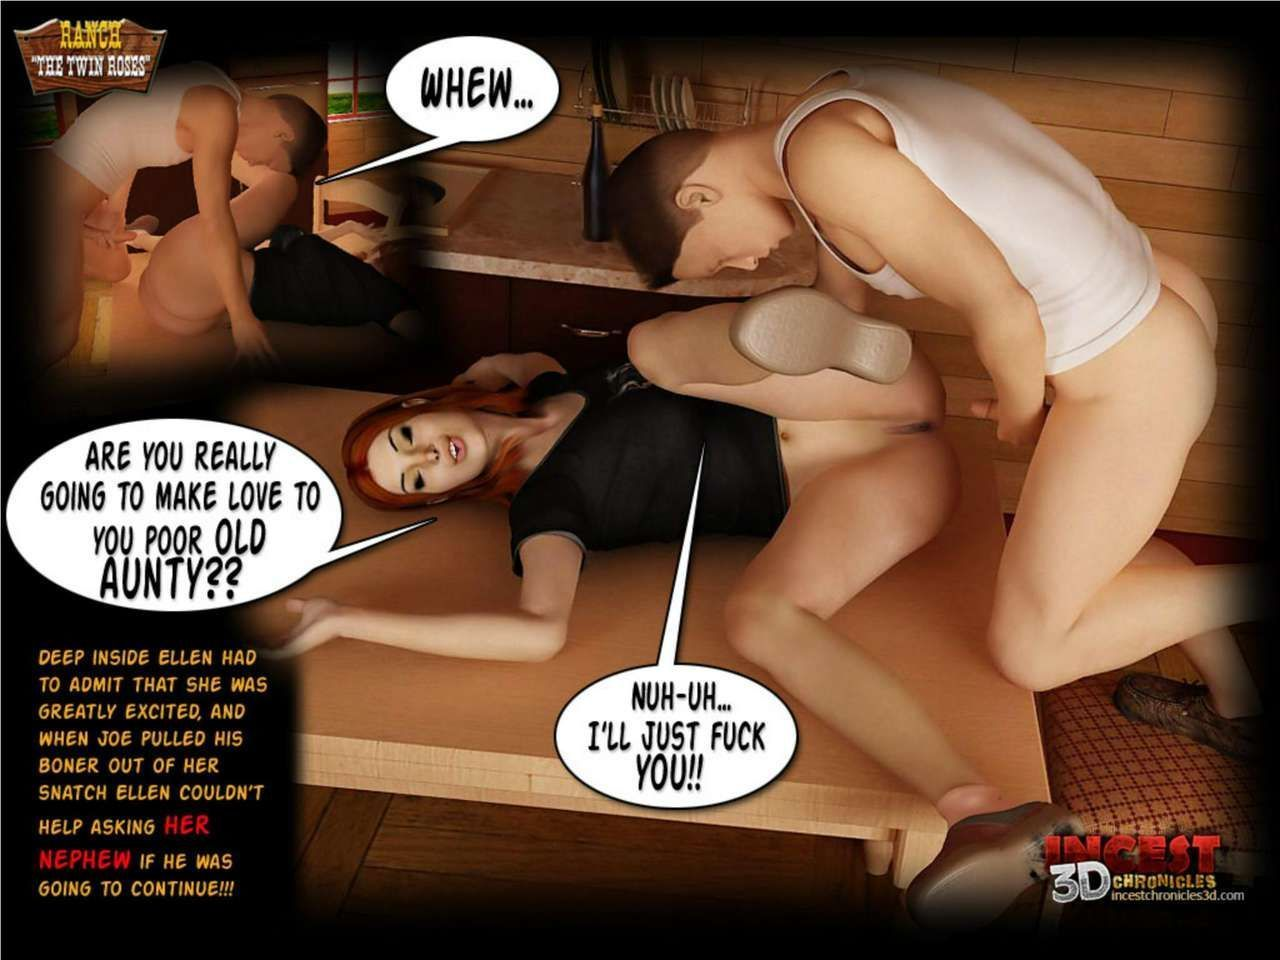 Ranch - The Twin Roses 1-5 - part 2